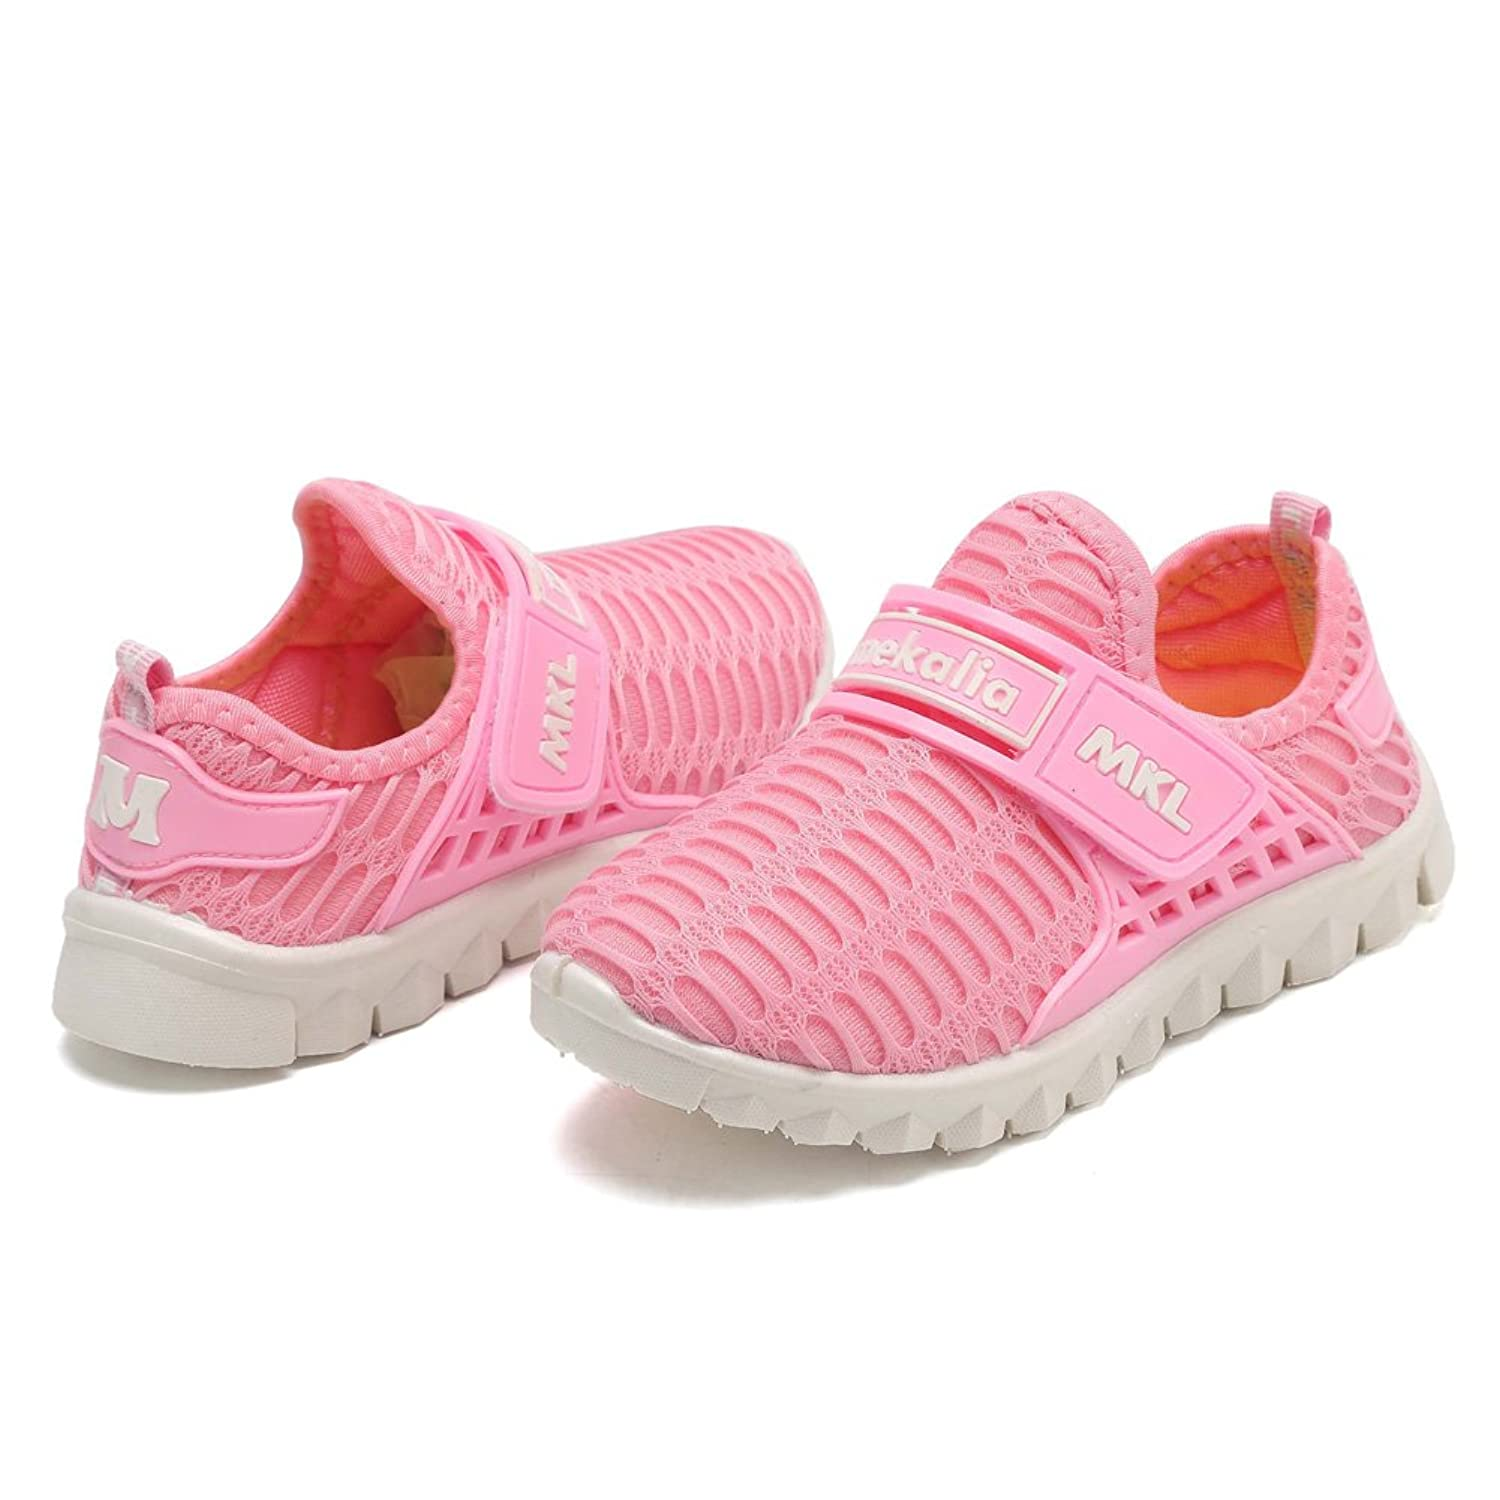 CIOR Boys Girls Breathable Lightweight Sneakers Antislip Shoes For Running Walking Toddler/Little Kid/Big Kid SC176 Pink 31 py9s6RCKX